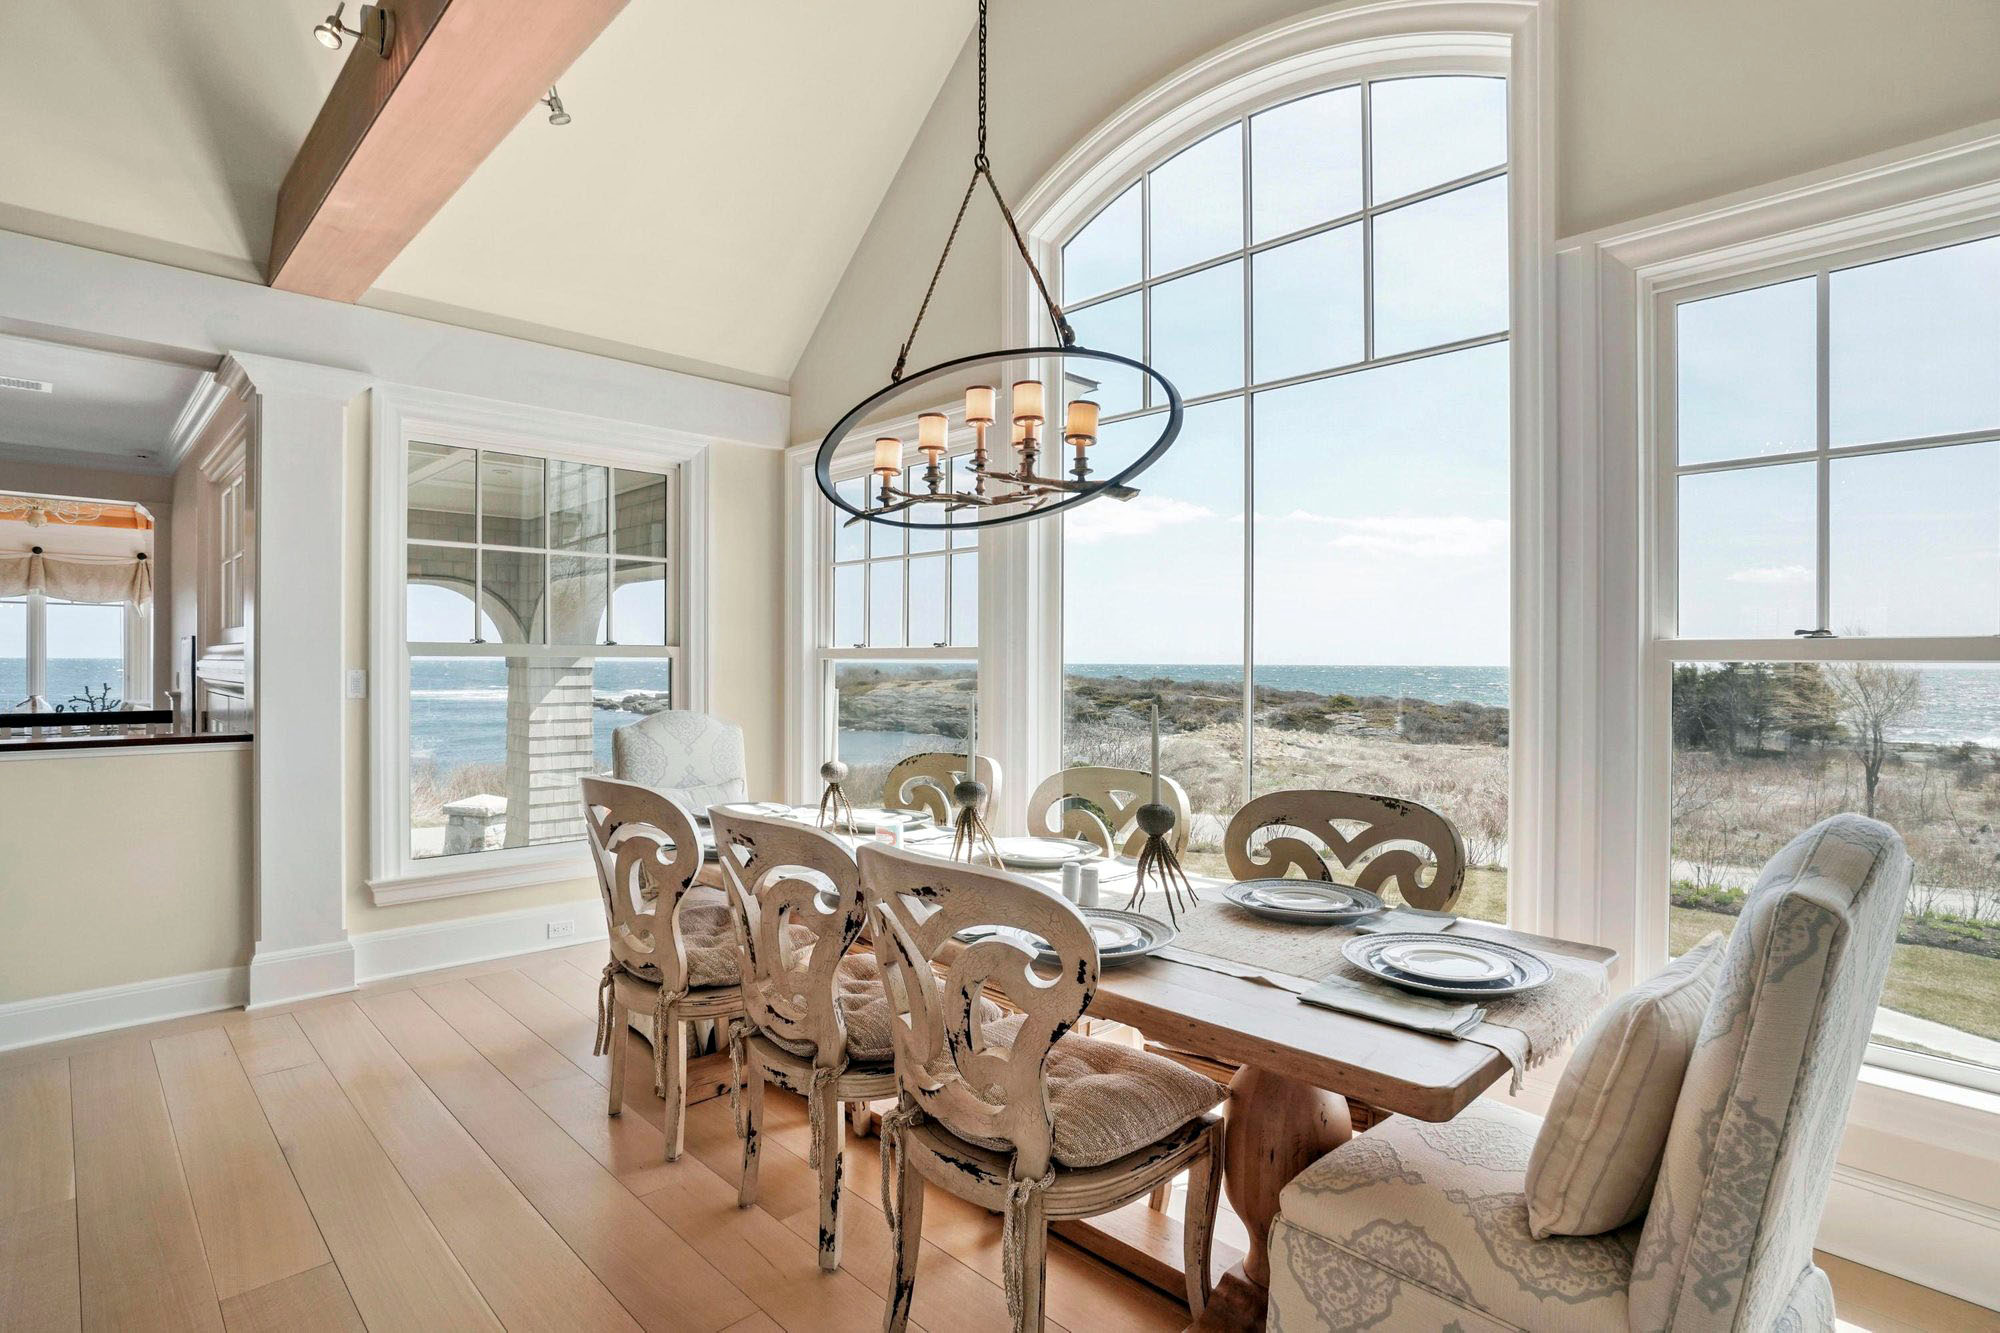 Spectacular ocean view from the 8 seat wood kitchen table. A mix of aged white washed and plush chairs.